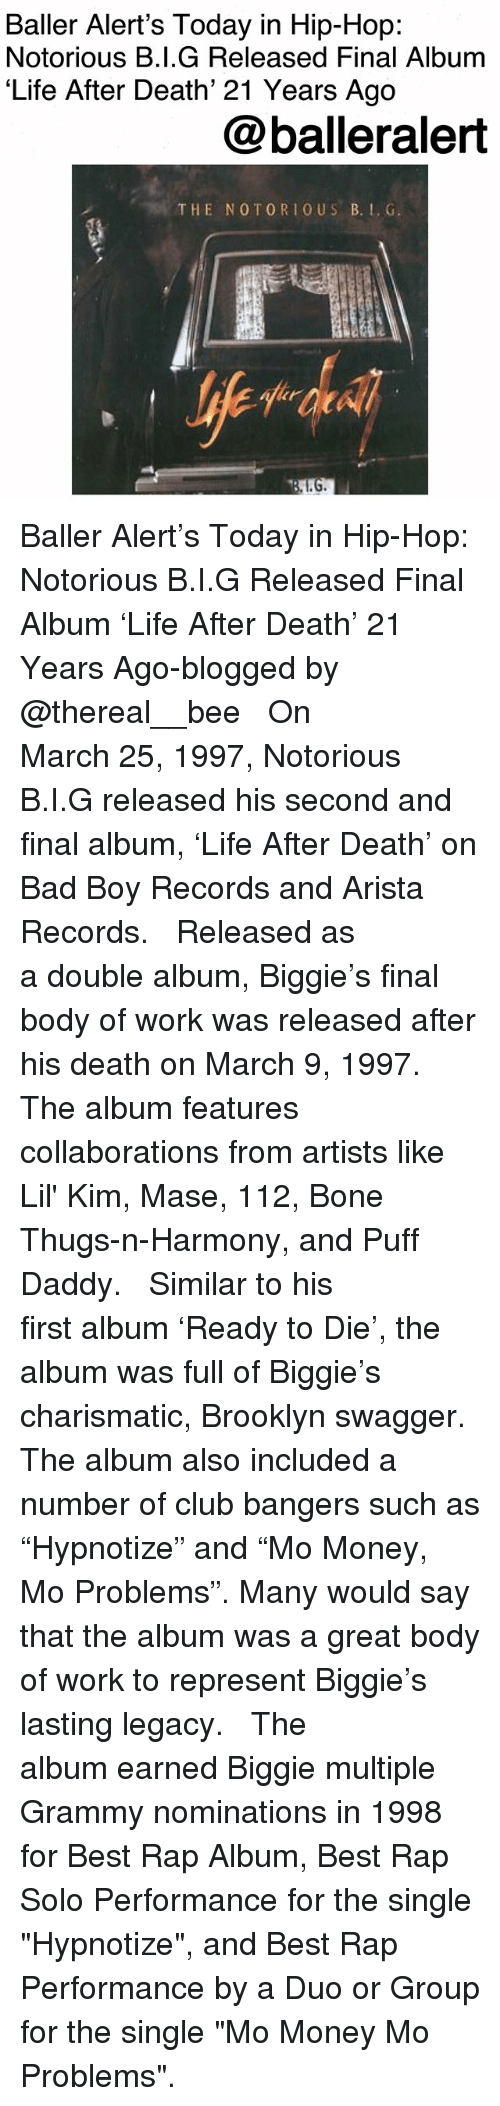 "Bad, Baller Alert, and Bone Thugs N Harmony: Baller Alert's Today in Hip-Hop:  Notorious B.I.G Released Final Album  'Life After Death' 21 Years Ago  @balleralert  THE NOTORIO US B.. G Baller Alert's Today in Hip-Hop: Notorious B.I.G Released Final Album 'Life After Death' 21 Years Ago-blogged by @thereal__bee ⠀⠀⠀⠀⠀⠀⠀⠀⠀ ⠀⠀ On March 25, 1997, Notorious B.I.G released his second and final album, 'Life After Death' on Bad Boy Records and Arista Records. ⠀⠀⠀⠀⠀⠀⠀⠀⠀ ⠀⠀ Released as a double album, Biggie's final body of work was released after his death on March 9, 1997. The album features collaborations from artists like Lil' Kim, Mase, 112, Bone Thugs-n-Harmony, and Puff Daddy. ⠀⠀⠀⠀⠀⠀⠀⠀⠀ ⠀⠀ Similar to his first album 'Ready to Die', the album was full of Biggie's charismatic, Brooklyn swagger. The album also included a number of club bangers such as ""Hypnotize"" and ""Mo Money, Mo Problems"". Many would say that the album was a great body of work to represent Biggie's lasting legacy. ⠀⠀⠀⠀⠀⠀⠀⠀⠀ ⠀⠀ The album earned Biggie multiple Grammy nominations in 1998 for Best Rap Album, Best Rap Solo Performance for the single ""Hypnotize"", and Best Rap Performance by a Duo or Group for the single ""Mo Money Mo Problems""."